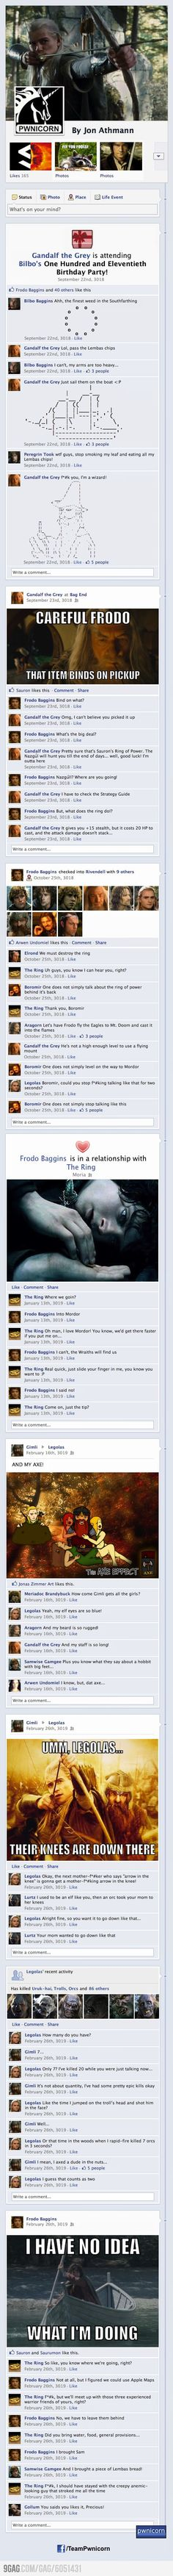 Lord of the Rings: Facebook edition